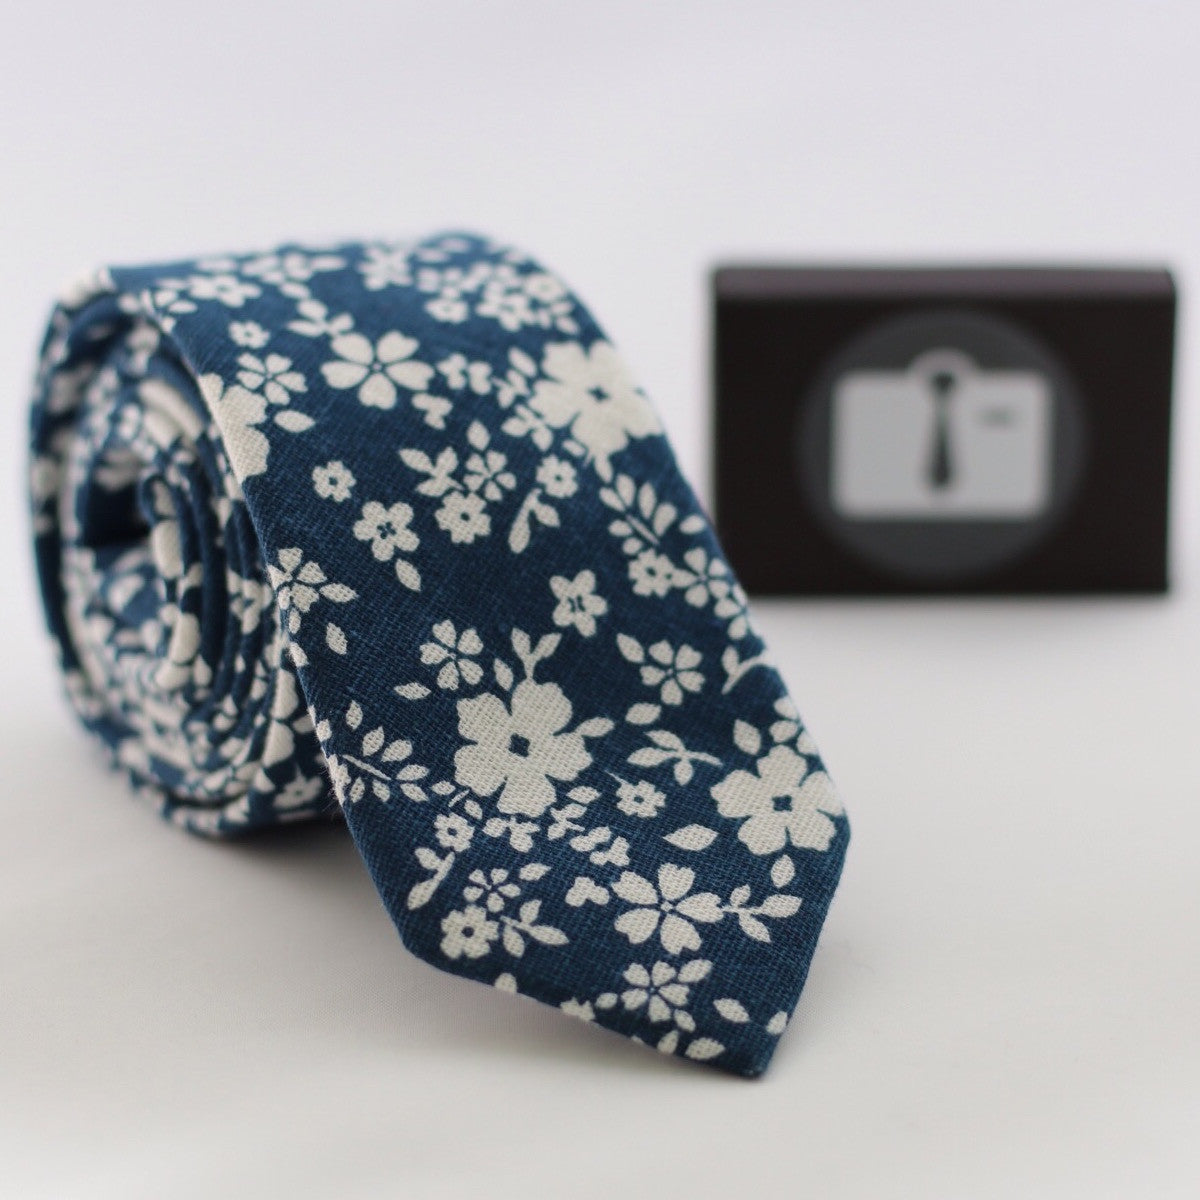 Navy Floral Tie With White Abstract Design